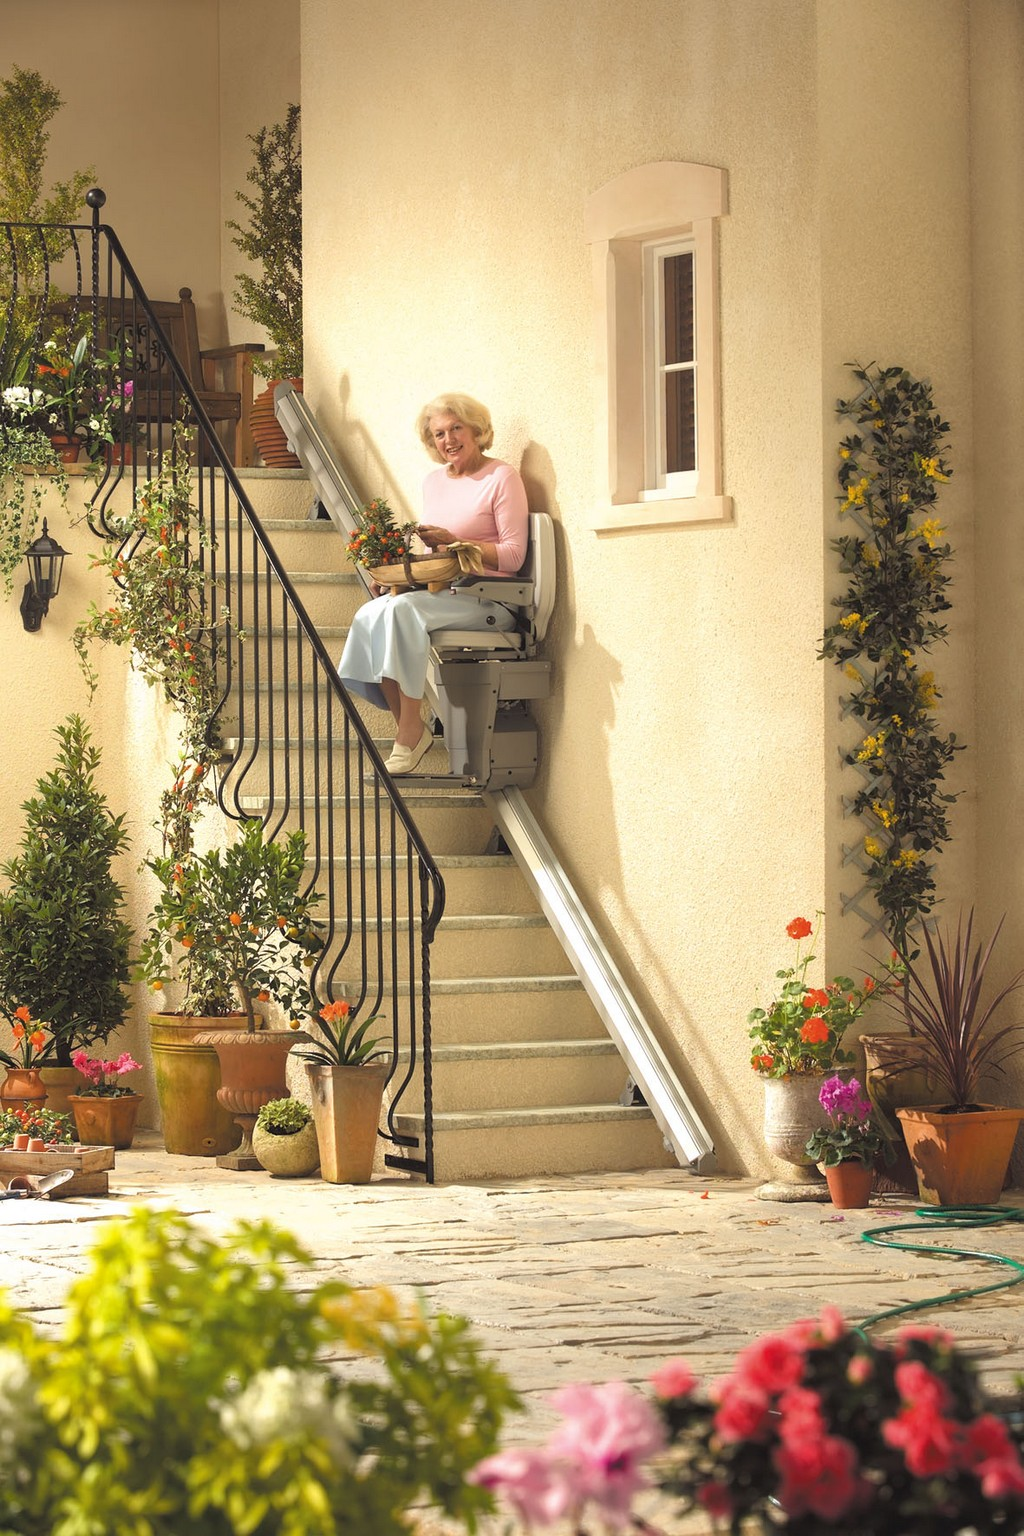 stair lift, stairlift medical supplies, akorn stair lifts, portable stair lift